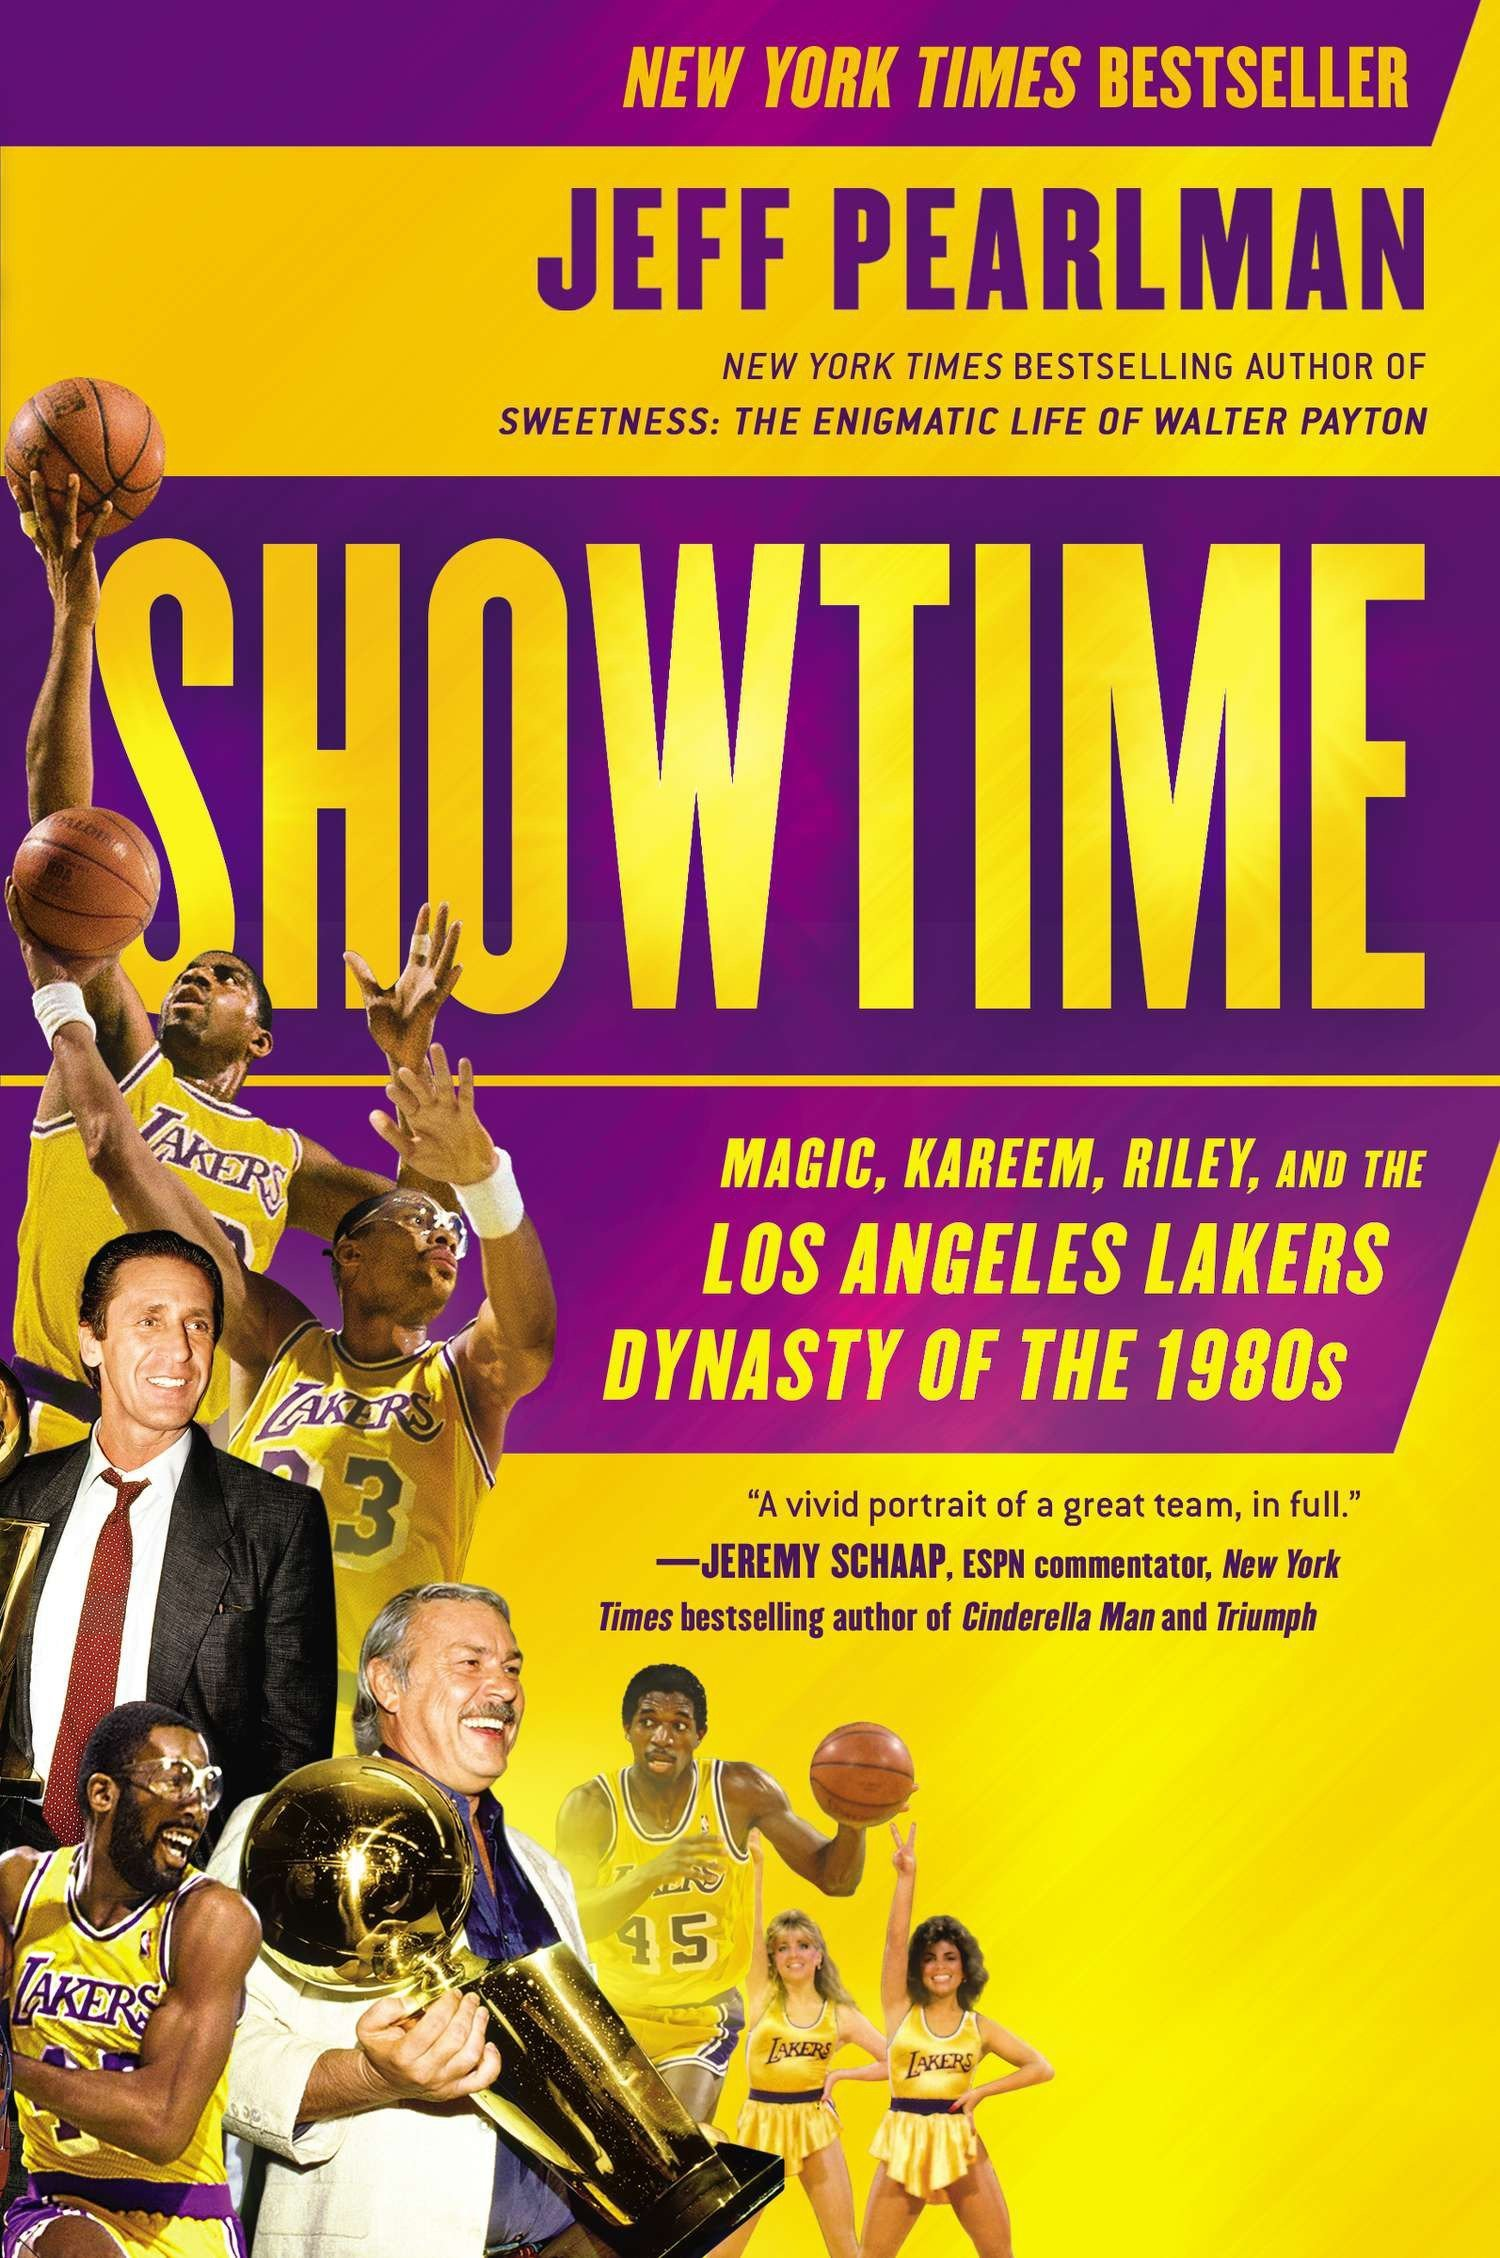 Amazon.com: Showtime: Magic, Kareem, Riley, and the Los Angeles Lakers  Dynasty of the 1980s (9781592408870): Jeff Pearlman: Books